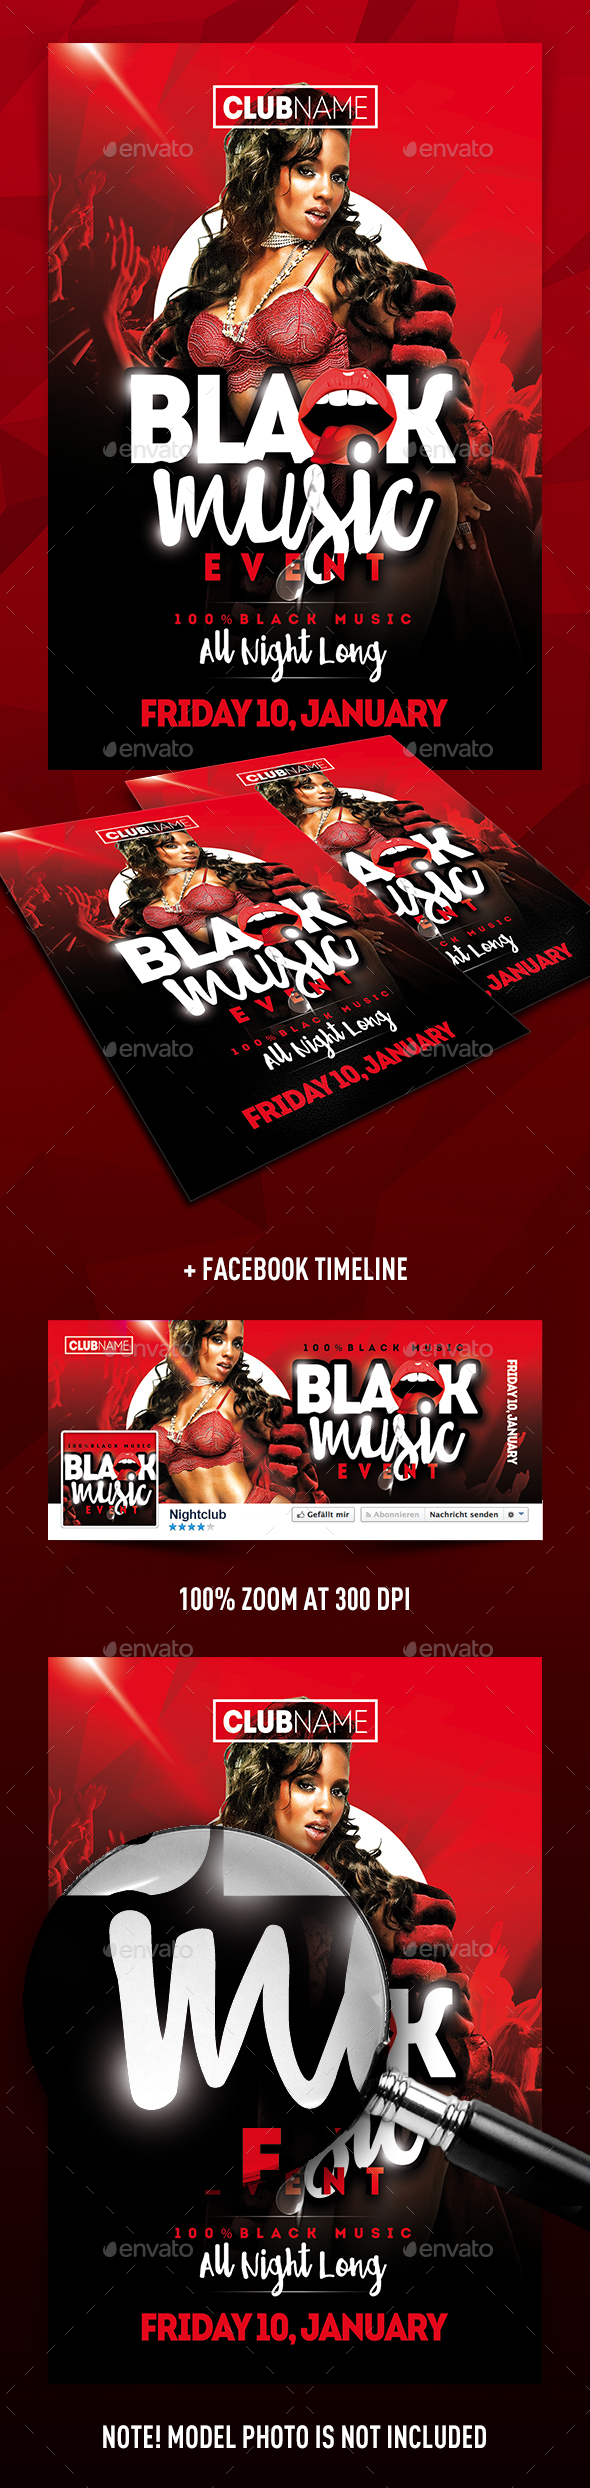 Black Music Event Flyer - Clubs & Parties Events